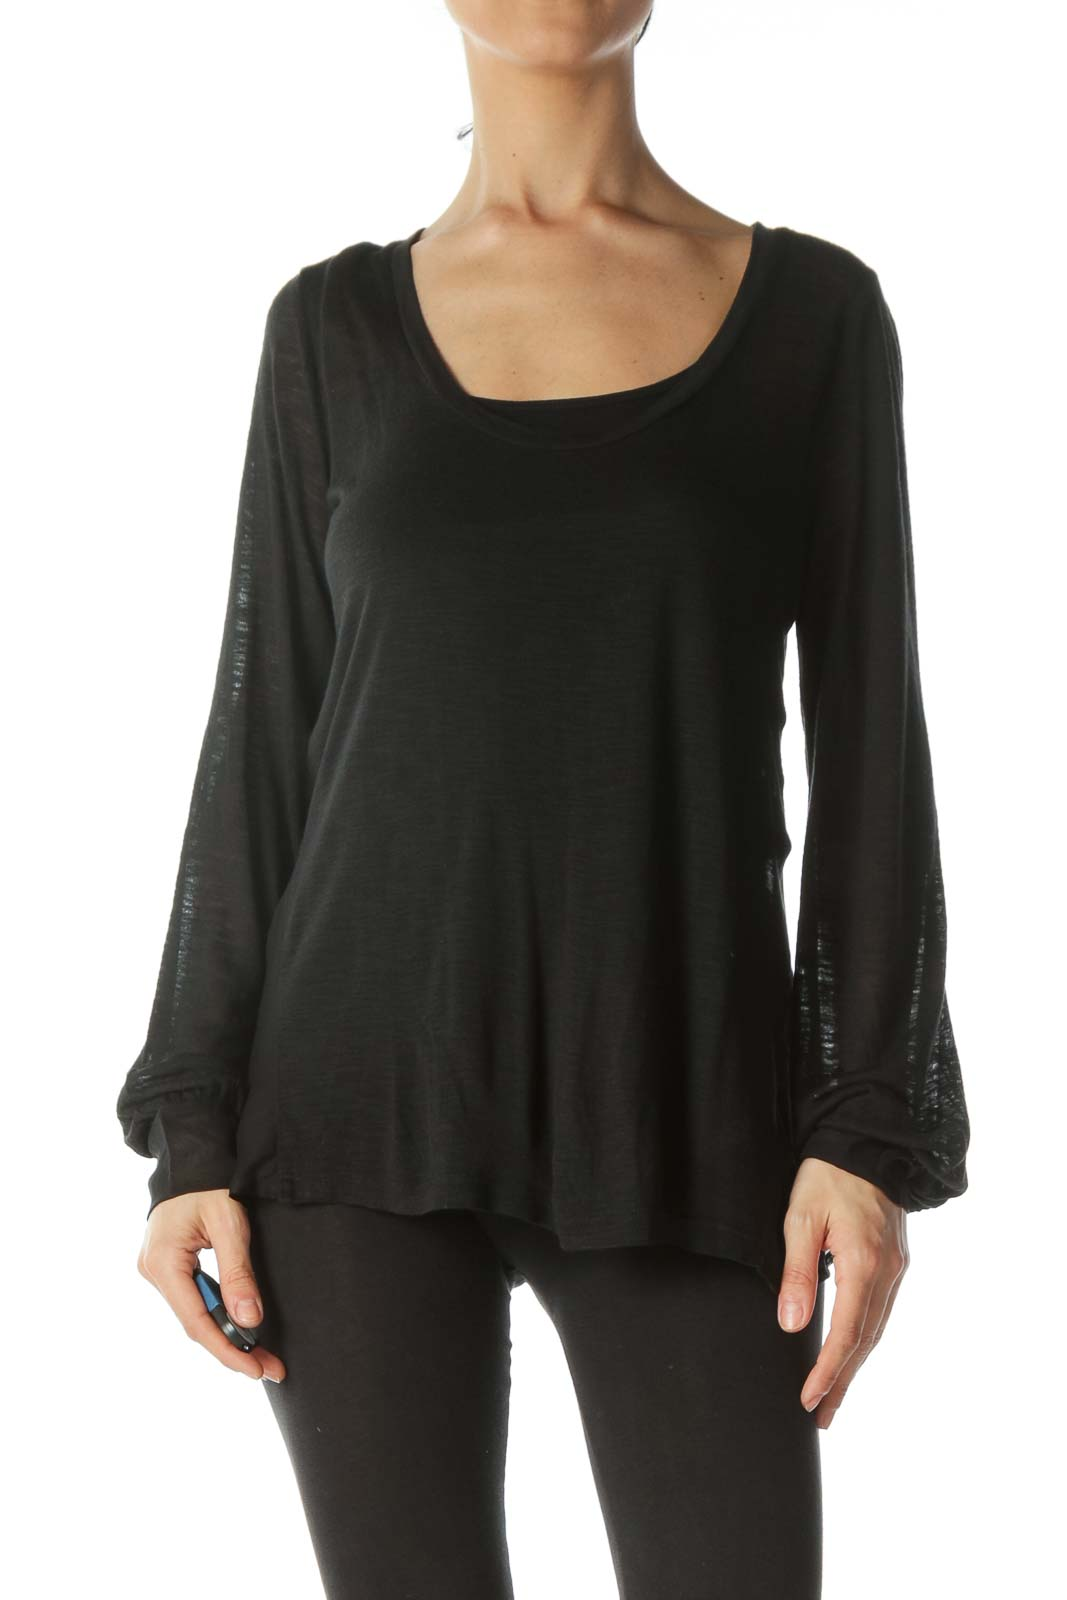 Black Chiffon-Bow Open-Back Thin See-Through Top Front